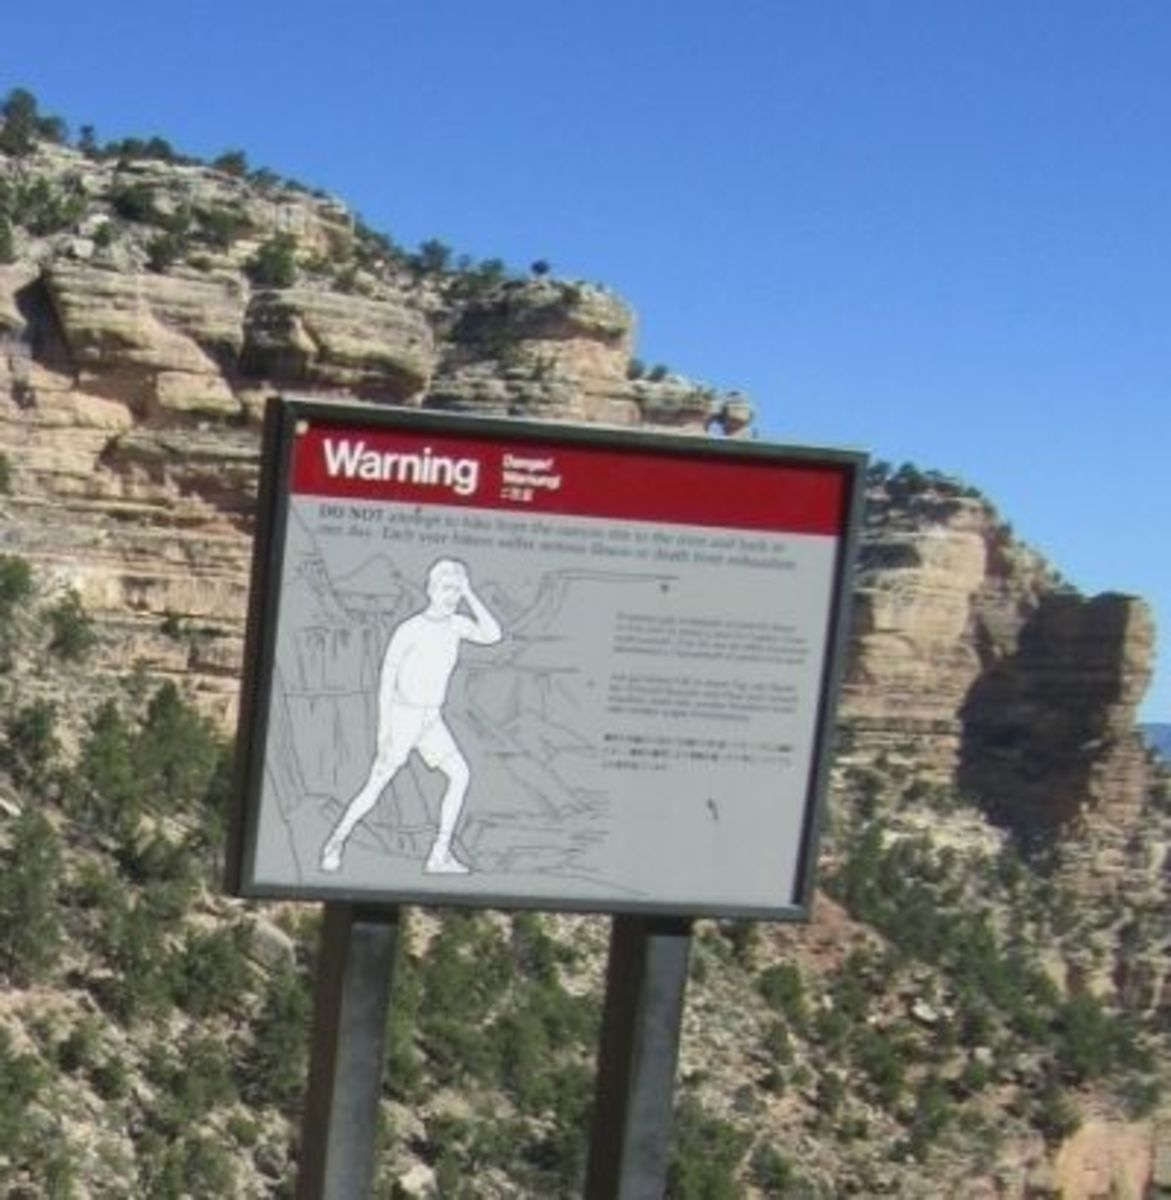 One of the warning signs posted at Grand Canyon trailheads